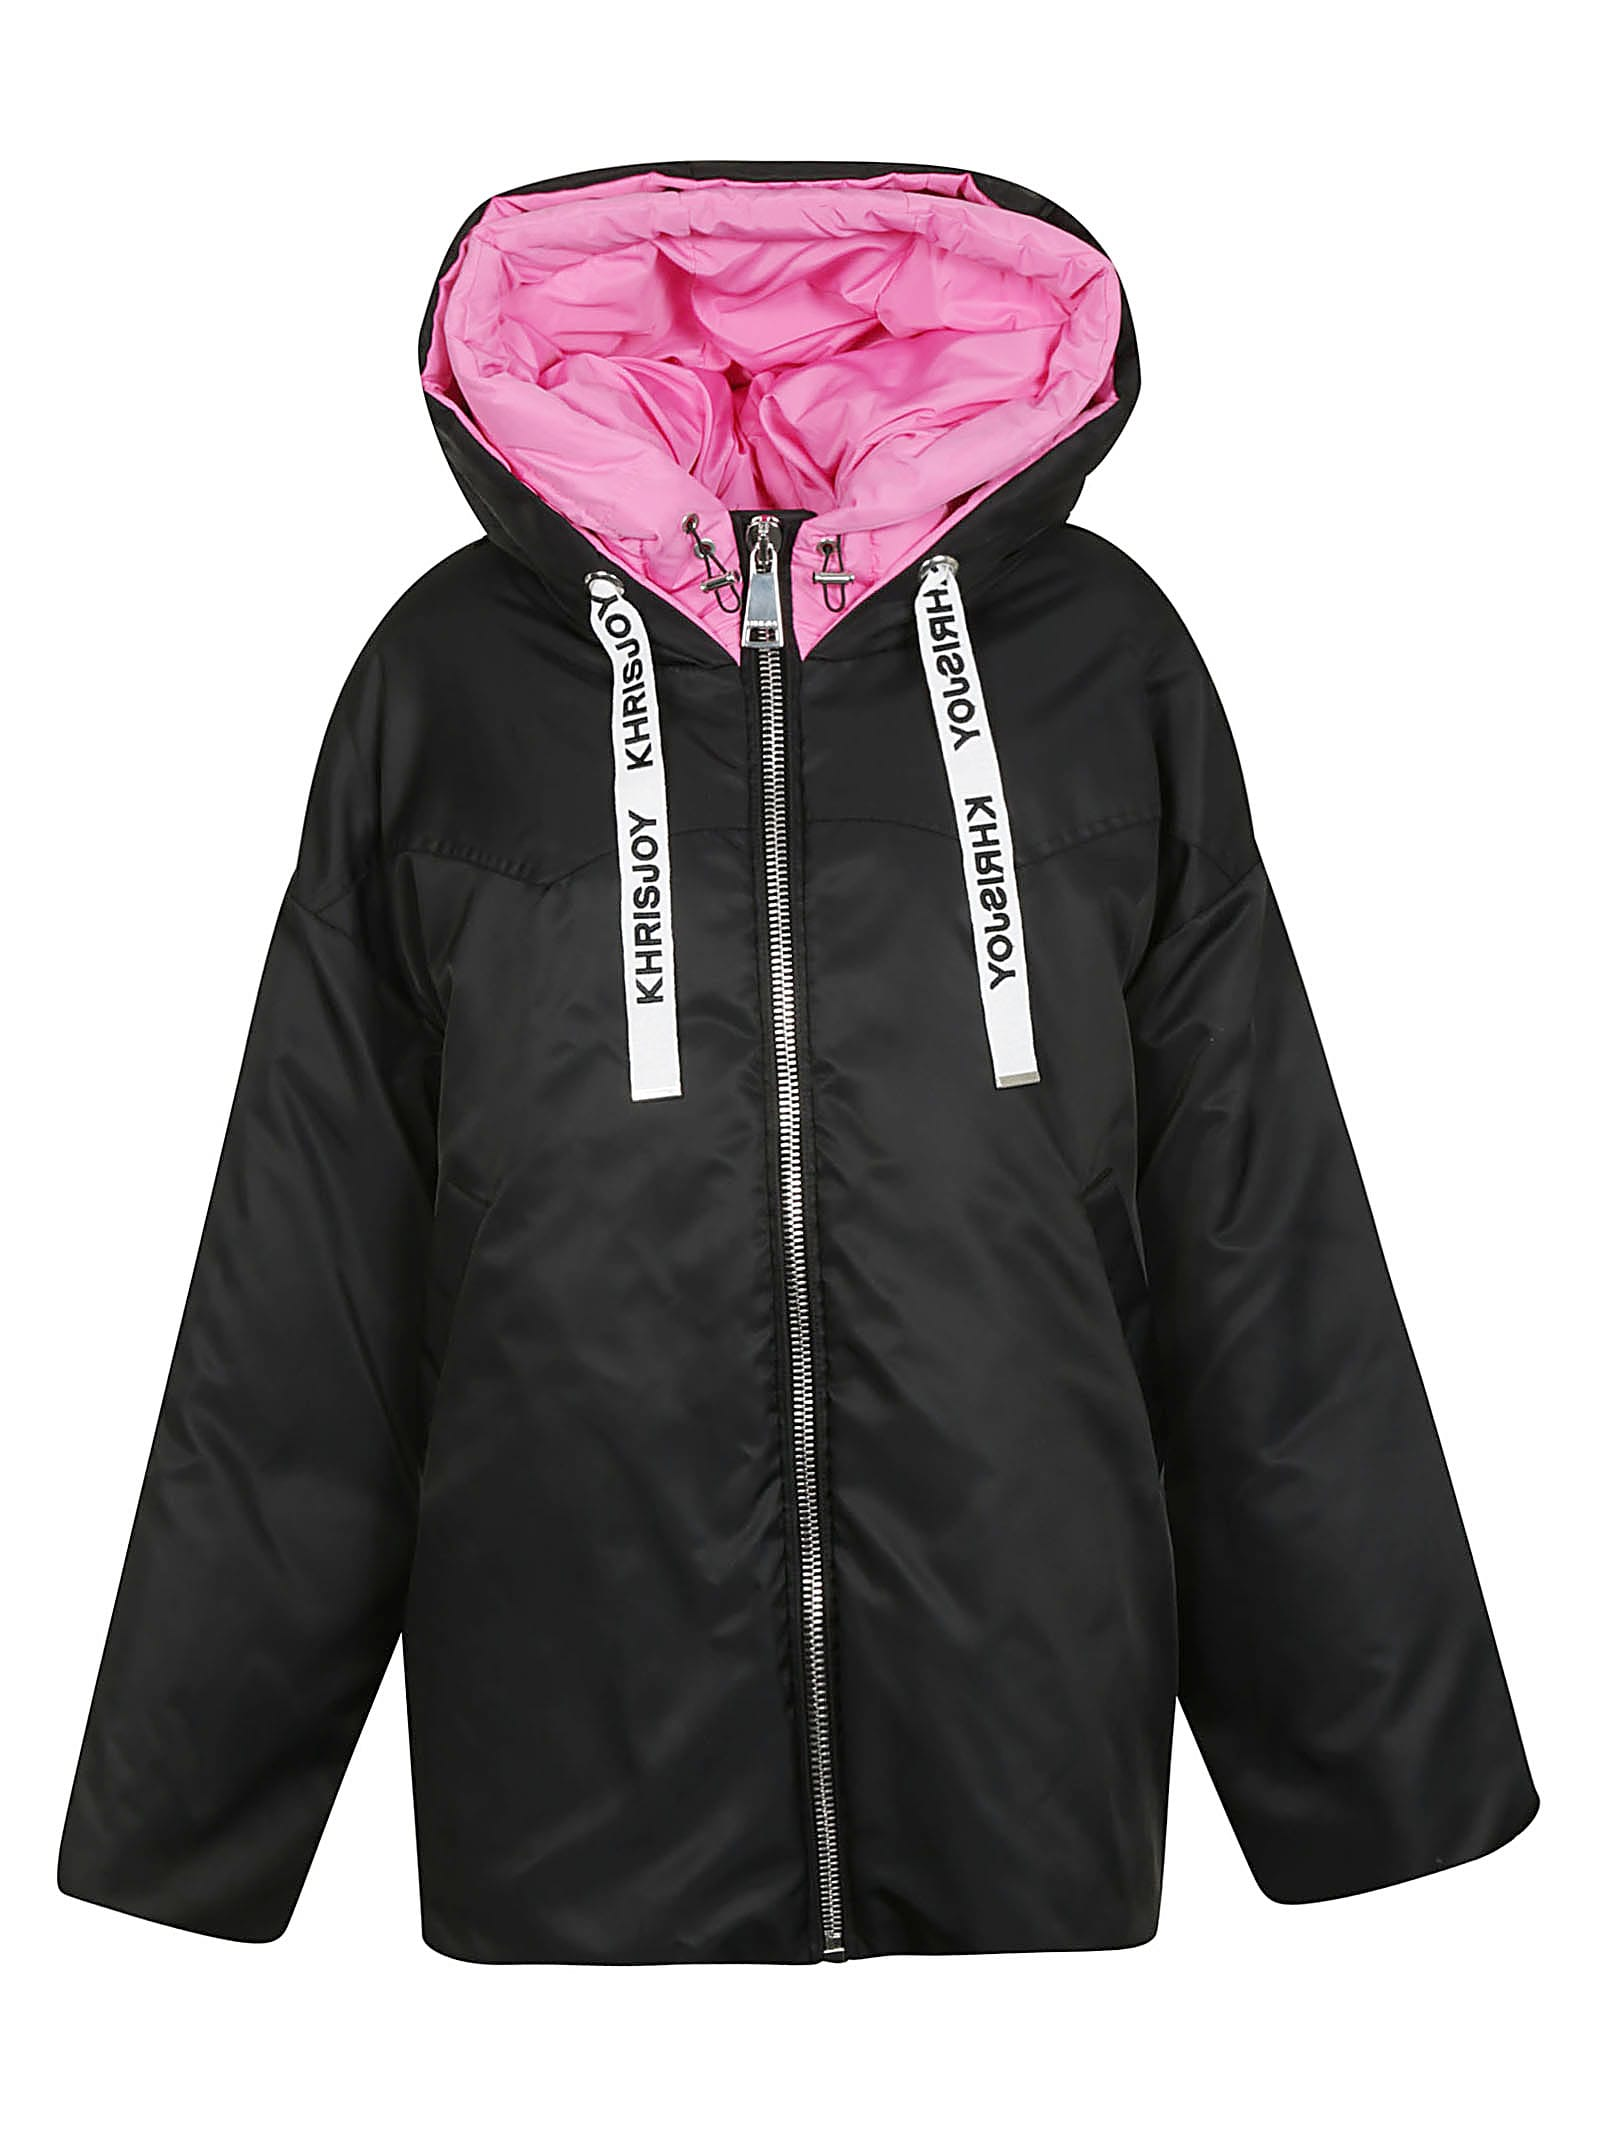 Khrisjoy New Joy Puffer Jacket